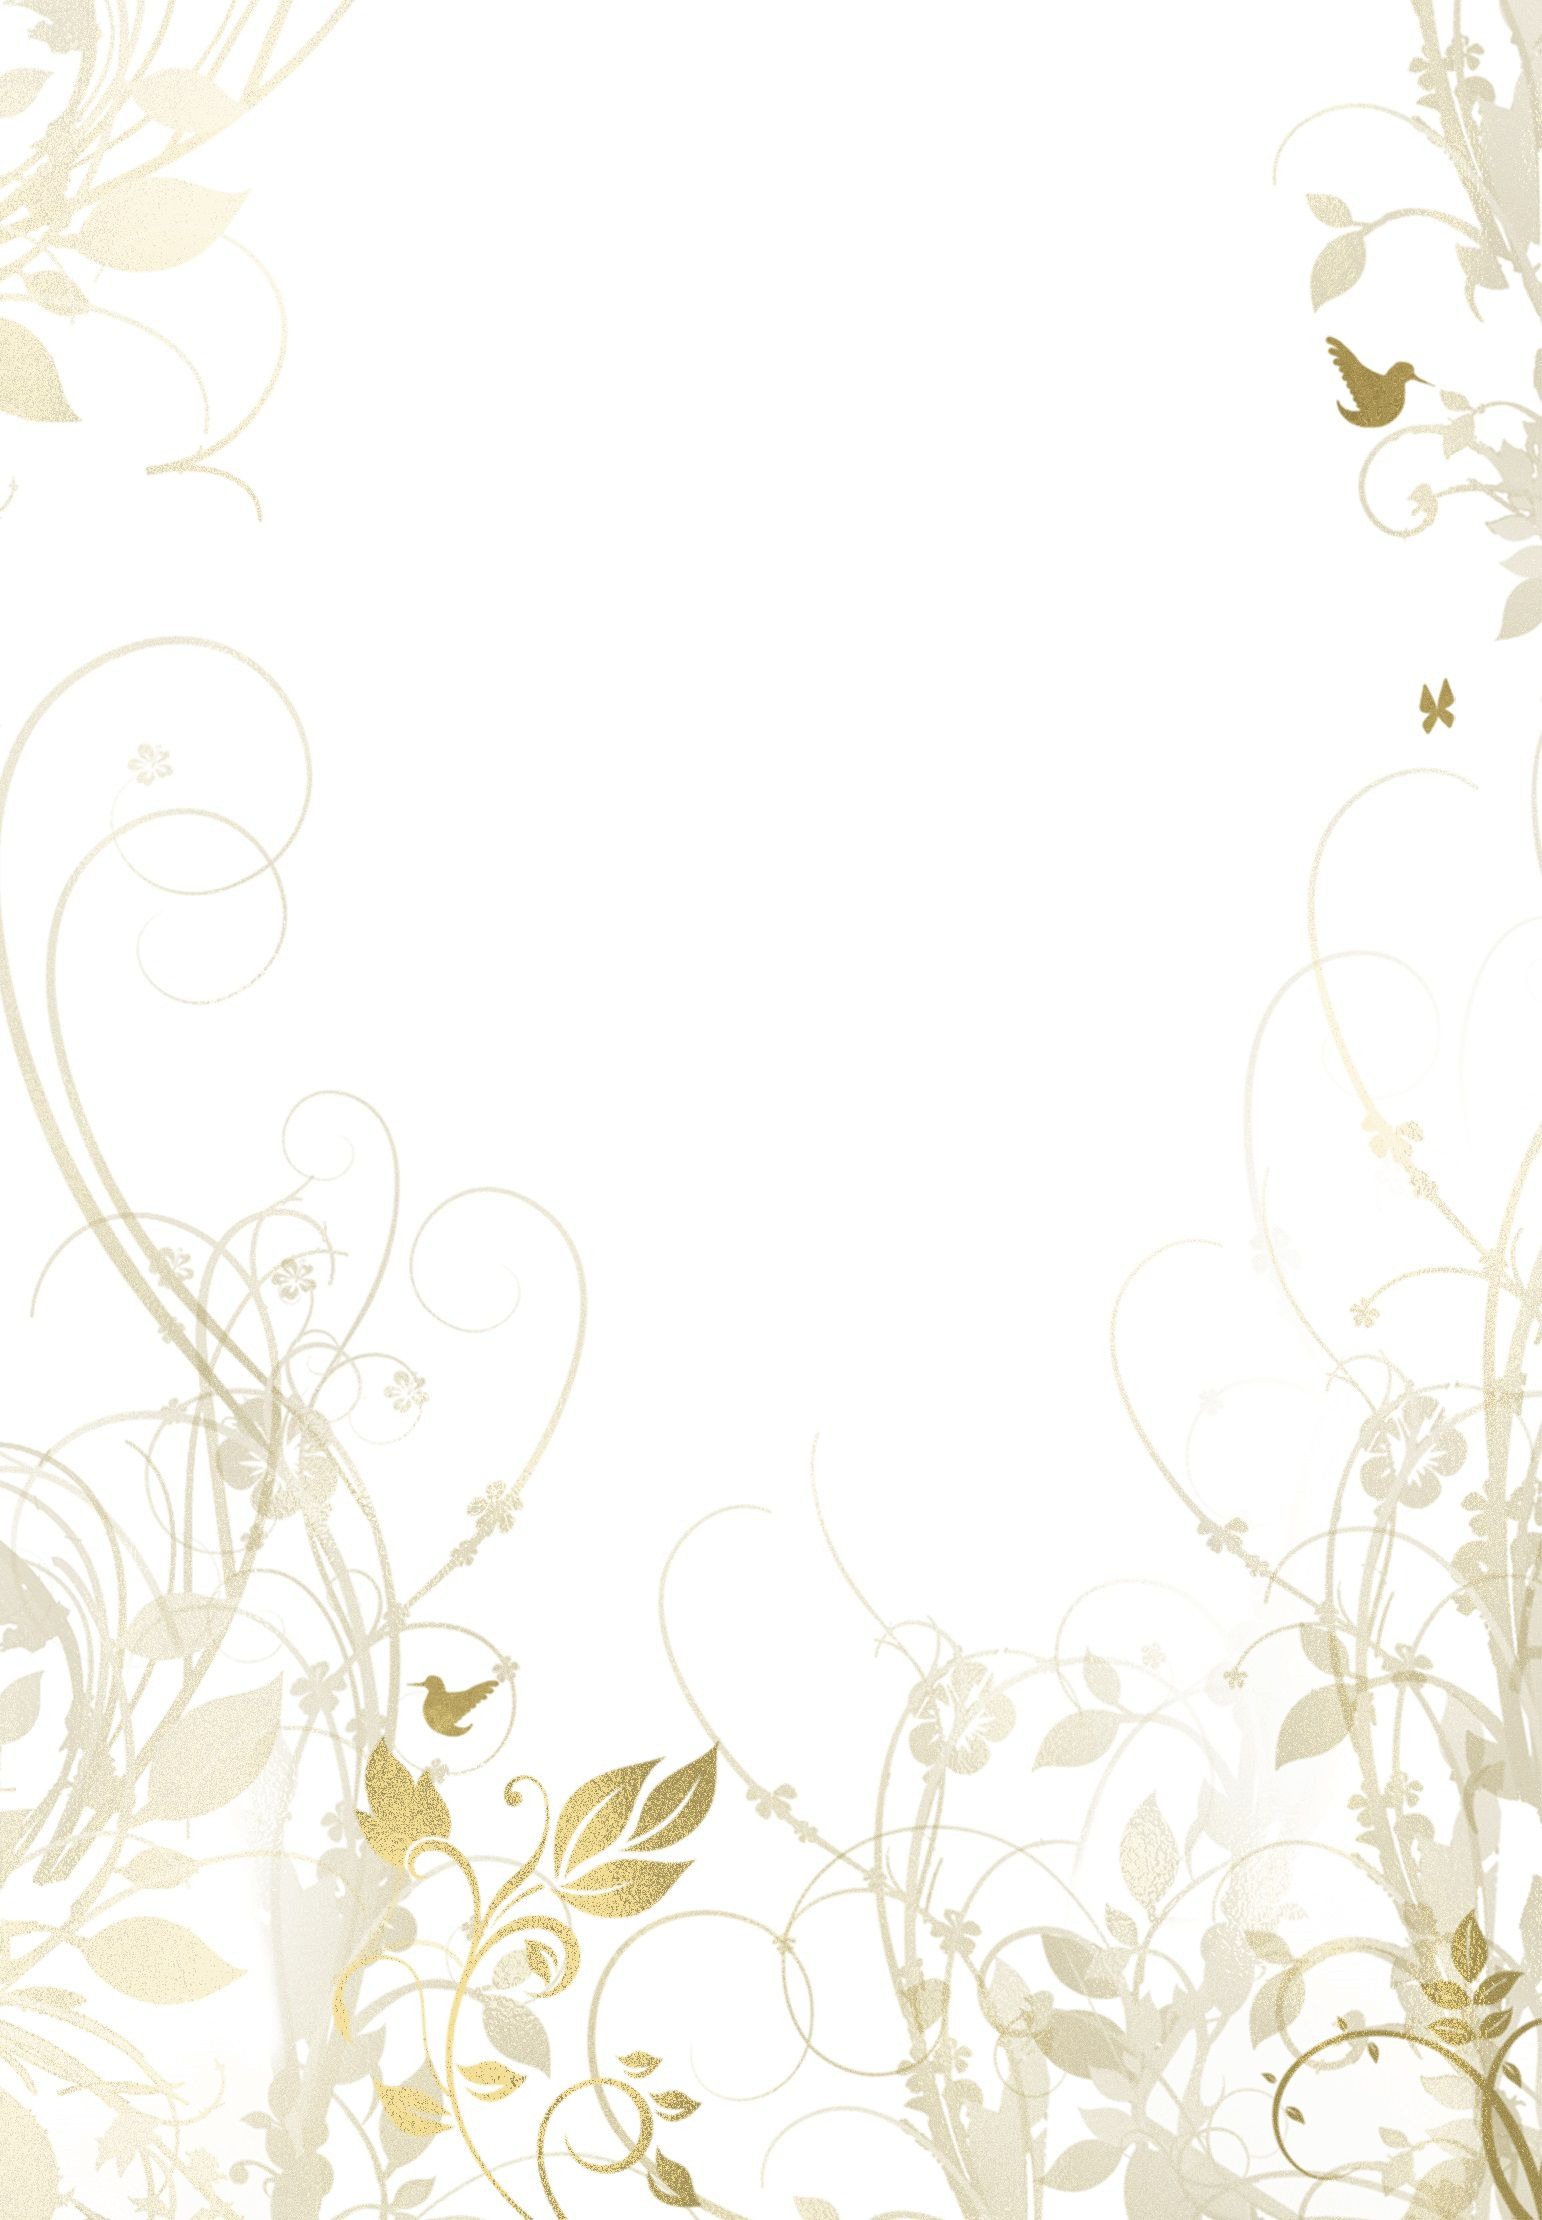 000 Wonderful Blank Wedding Invitation Template Picture  Templates Free Download Printable Royal BlueFull